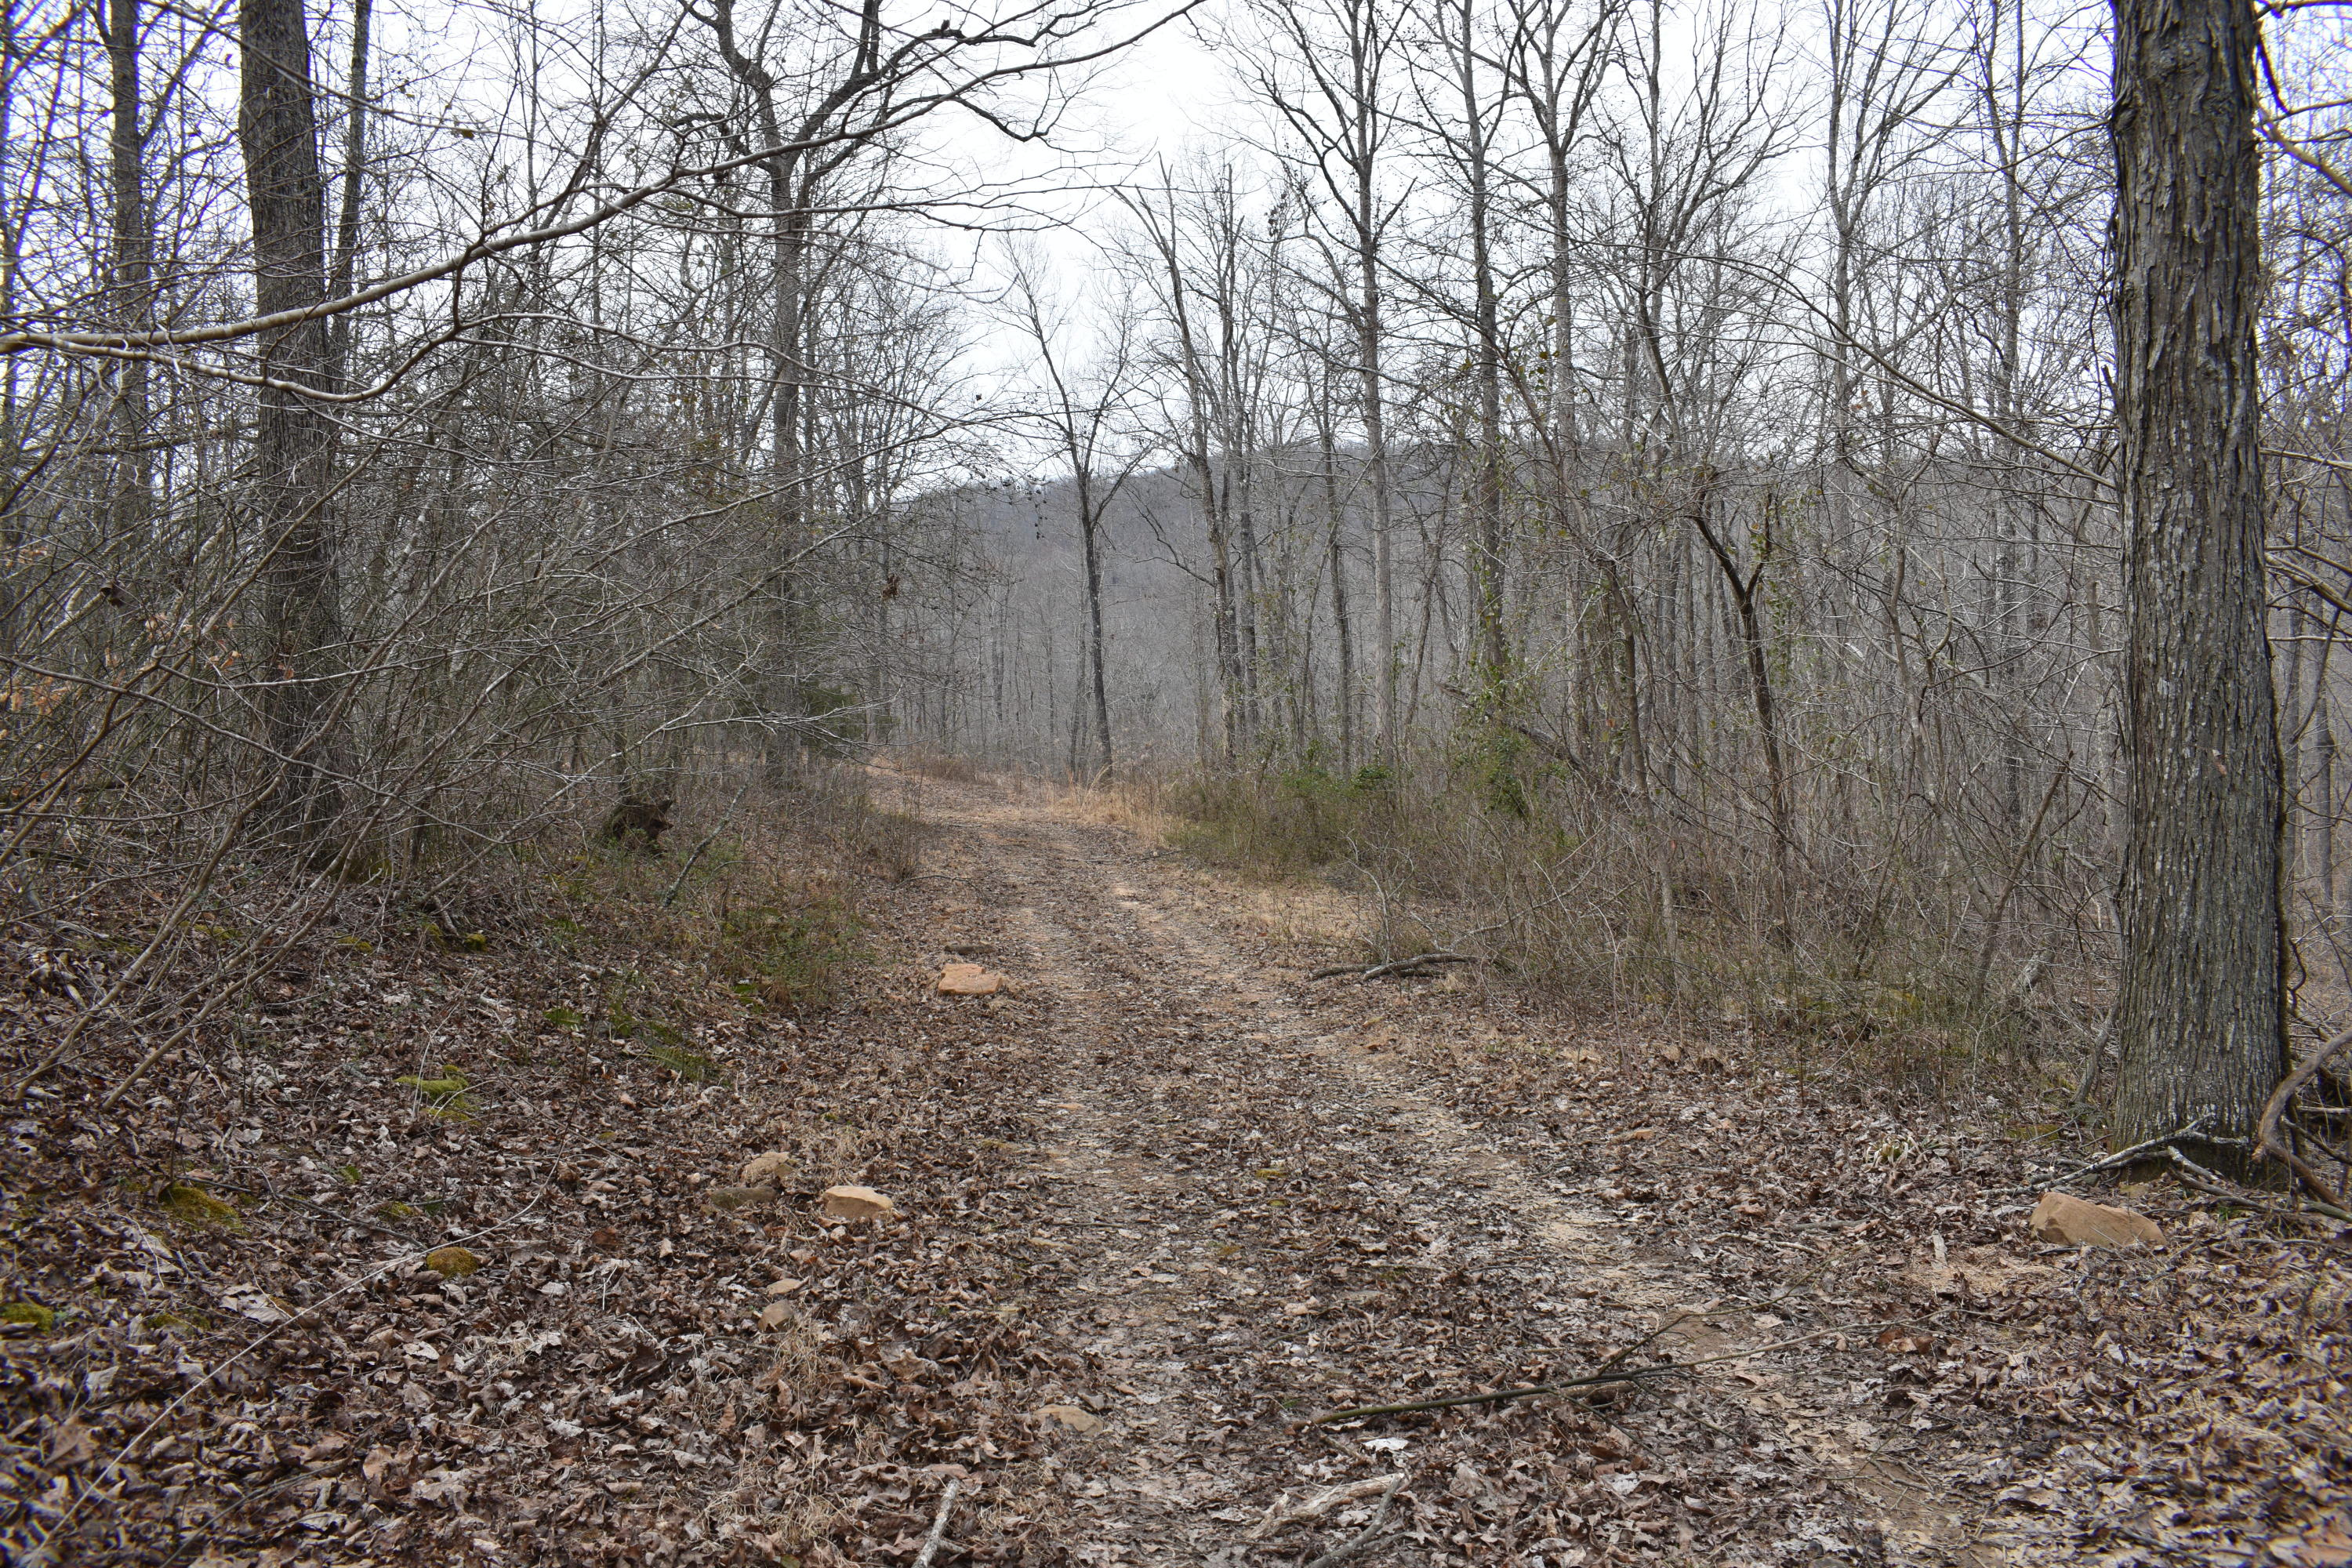 Large photo 27 of land for sale at 5867 Co Rd 4160 , Oark, AR, listed by Coldwell Banker Premier Realty